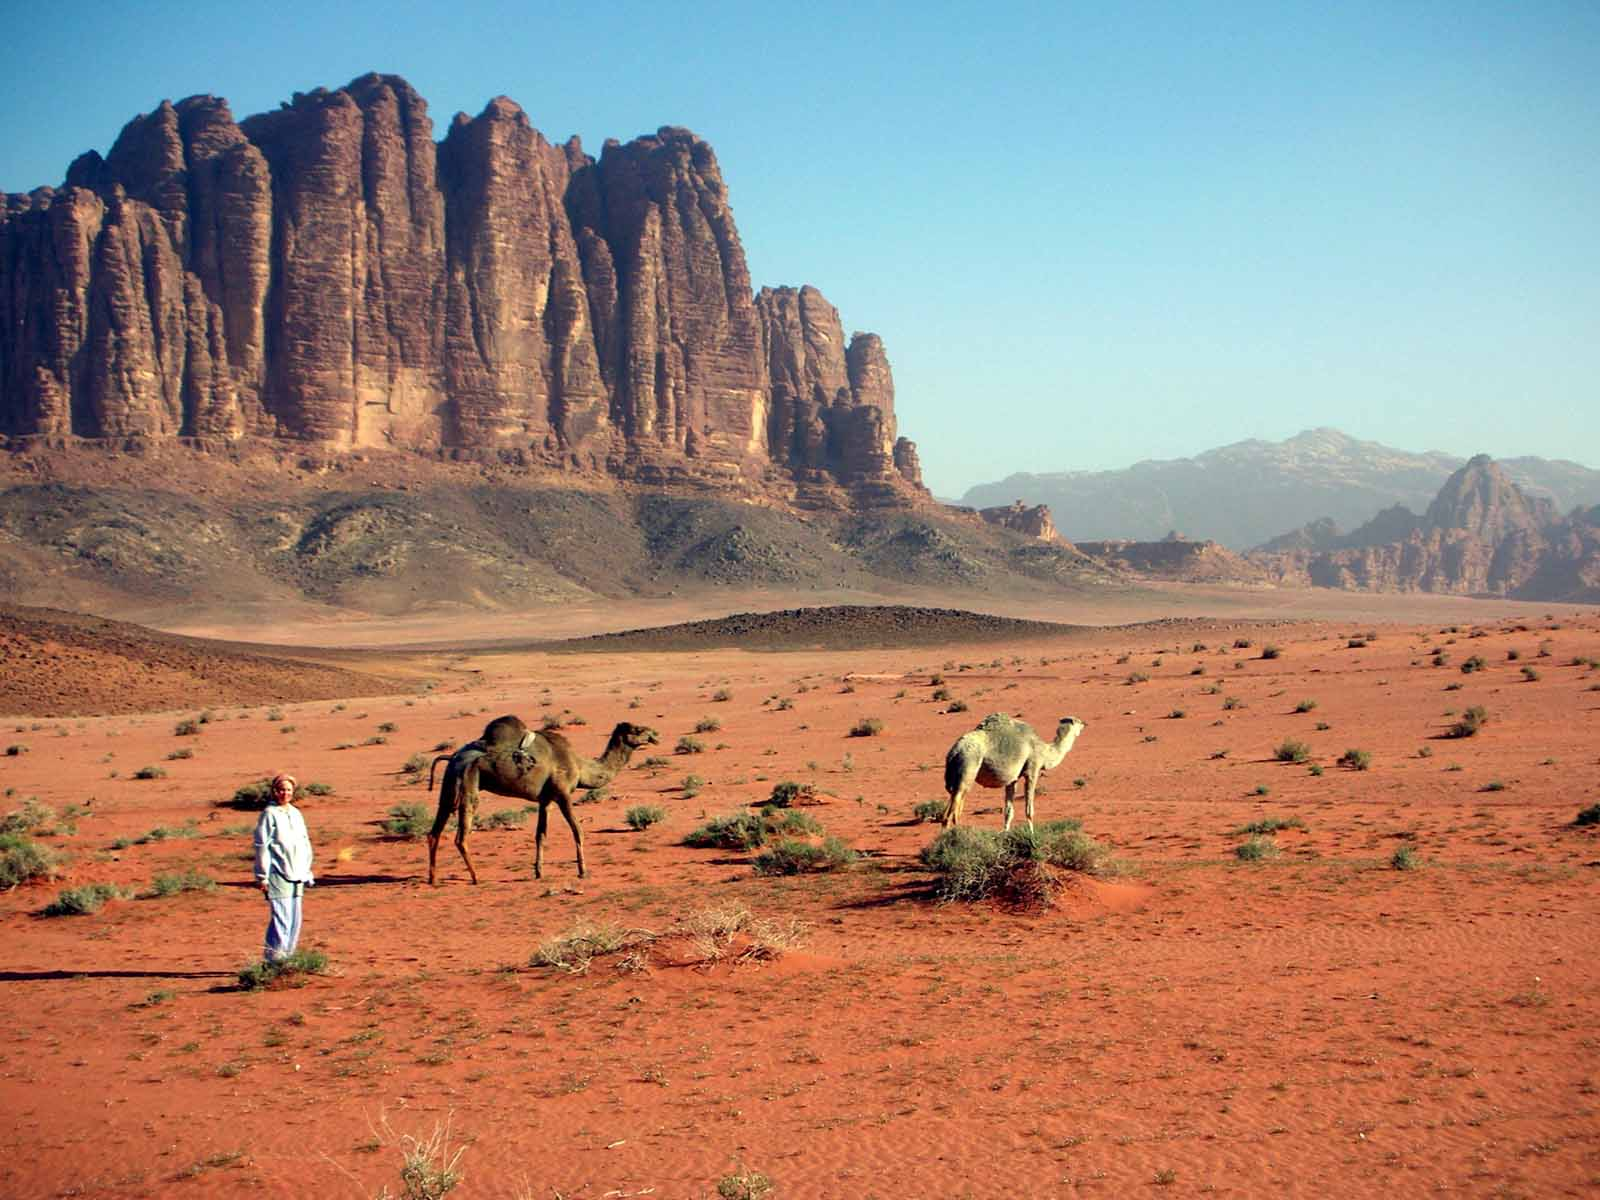 Bedouin with his camels